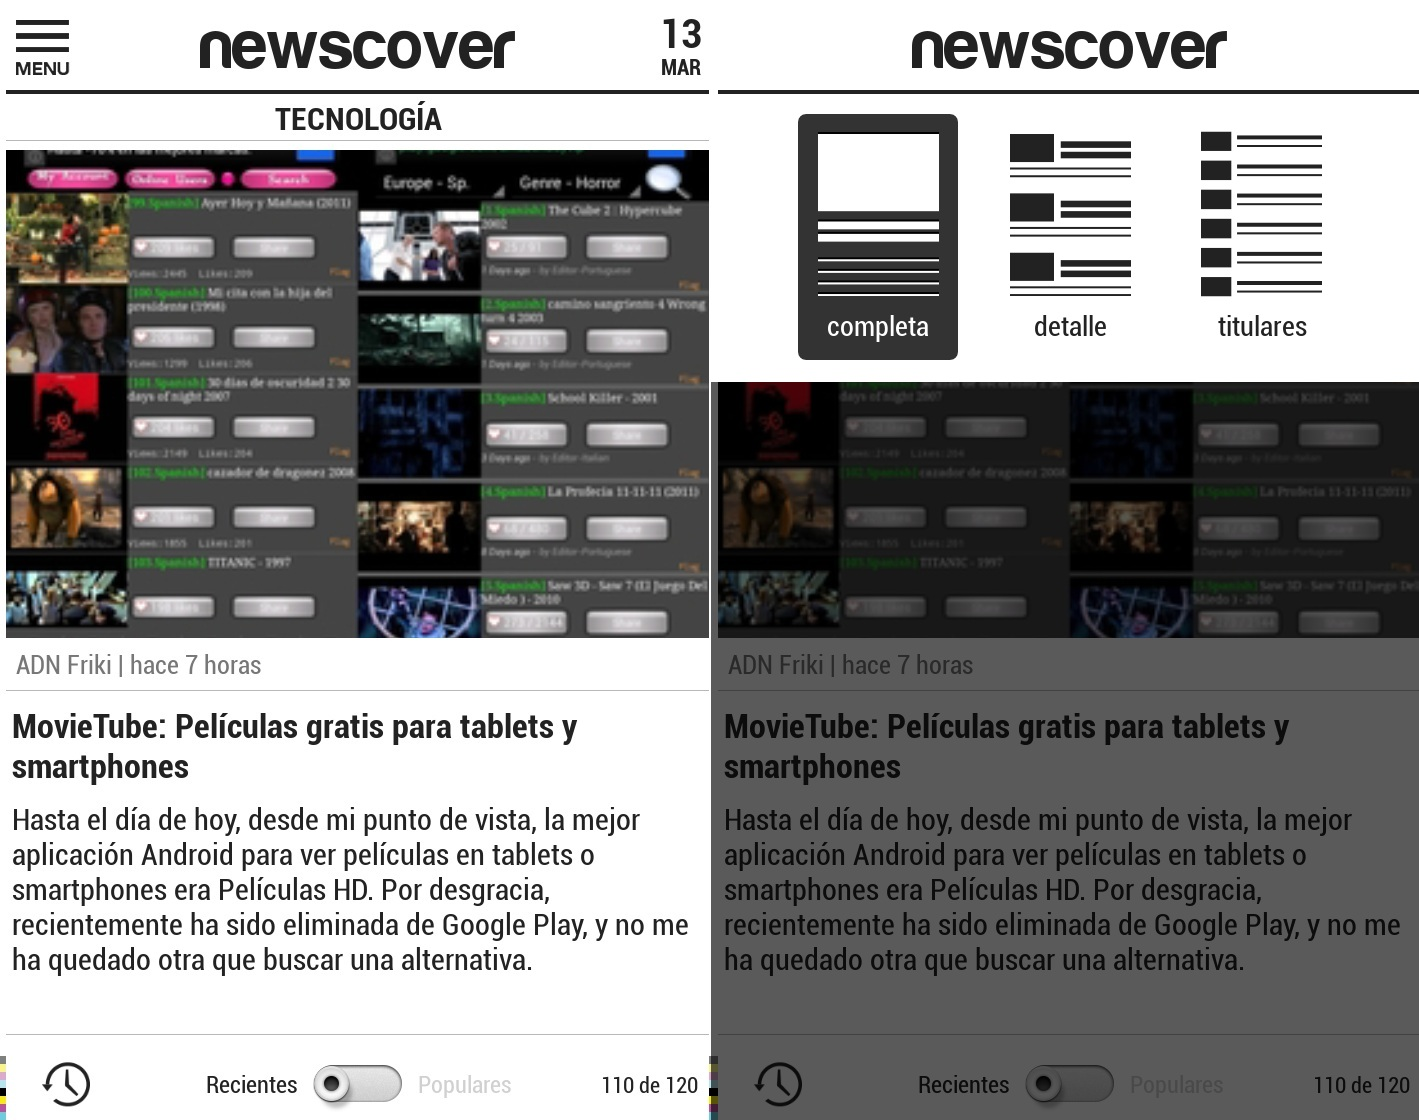 newscover android